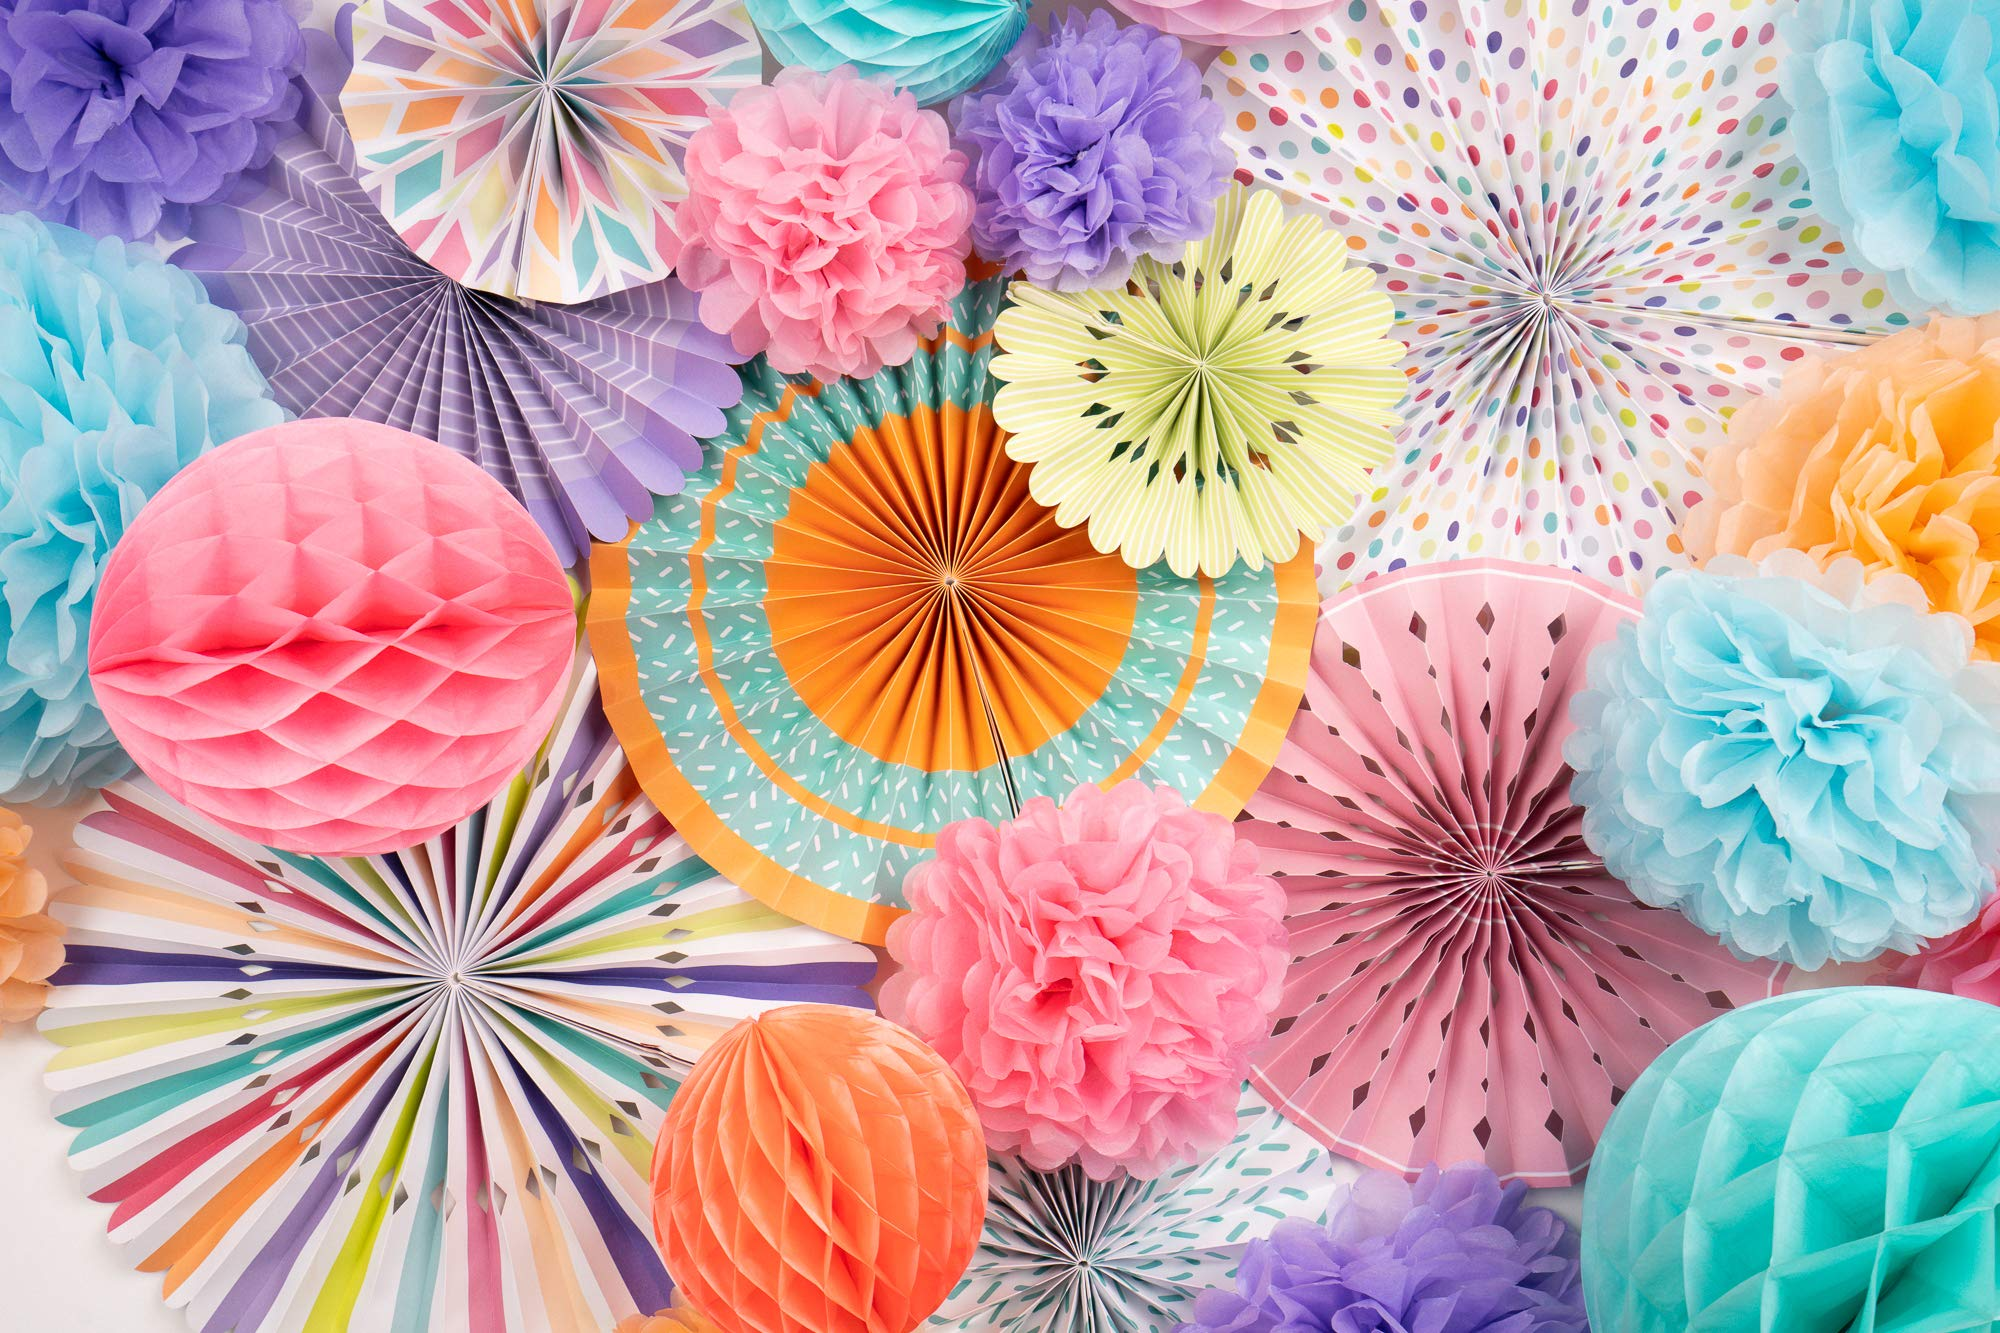 PapaKit Deluxe Origami Large Wall Decoration Set (26 Assorted Paper Fans & Pom-poms) Birthday Party Baby Shower Wedding Events Decor | Creative Art Design Pattern (Festive Colors, Deluxe 26 Piece Set) by PapaKit (Image #2)